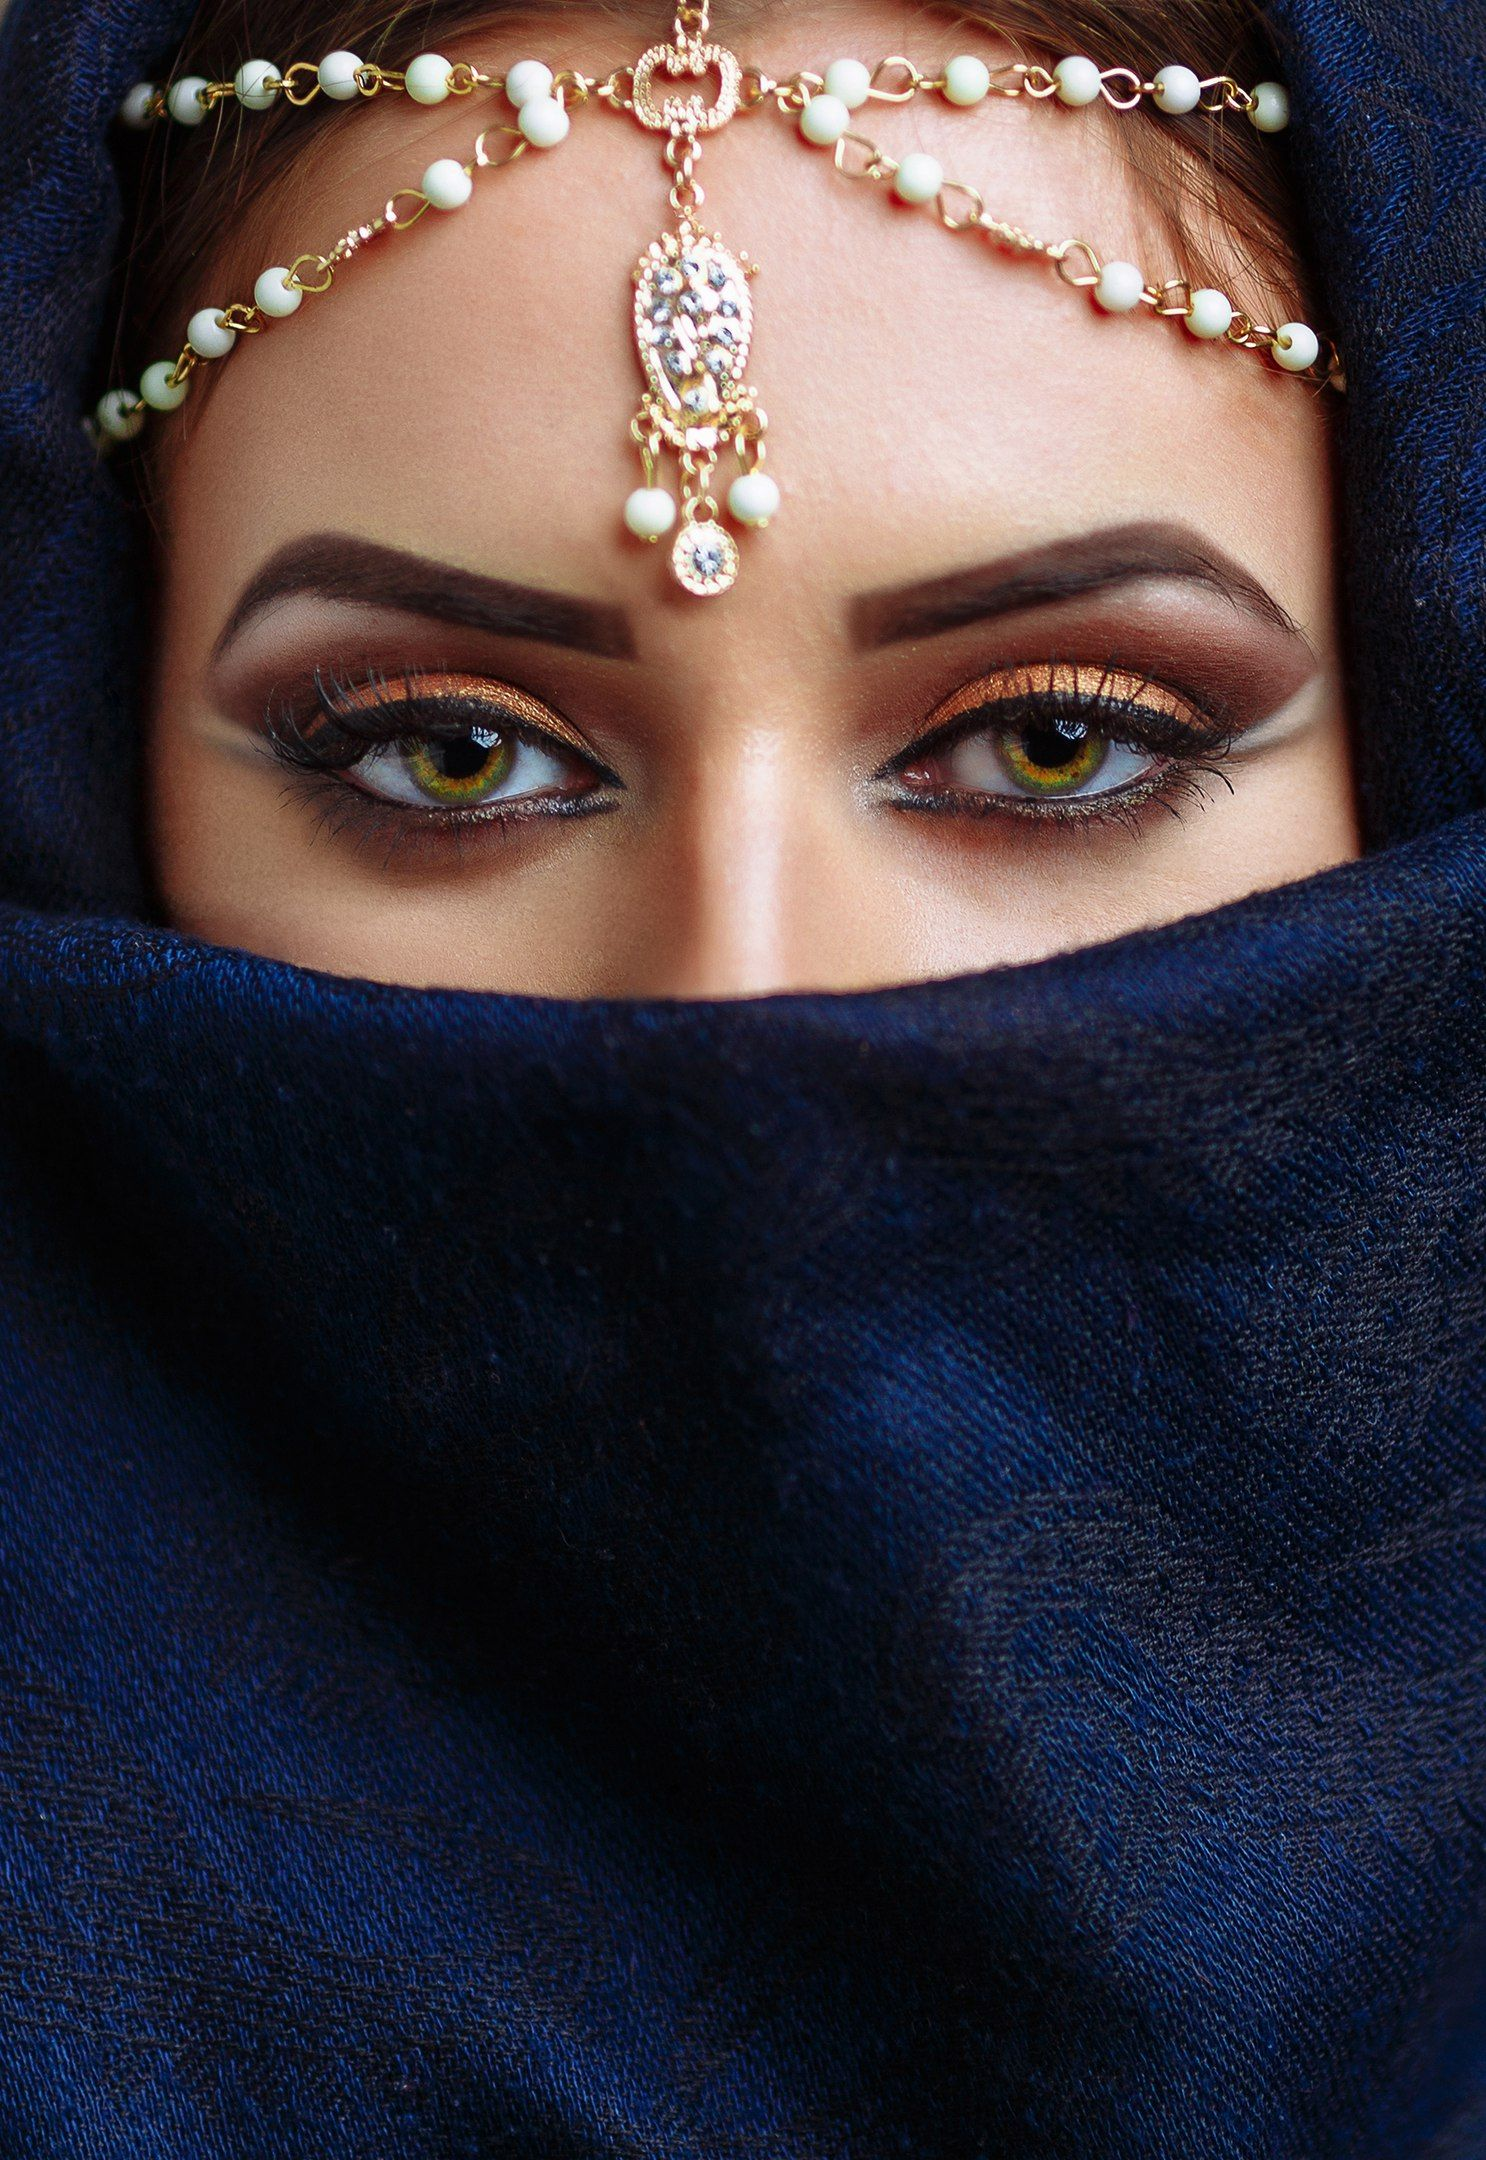 Pin By Rumit On Girls East - Девушки Востока  Niqab Eyes -7830